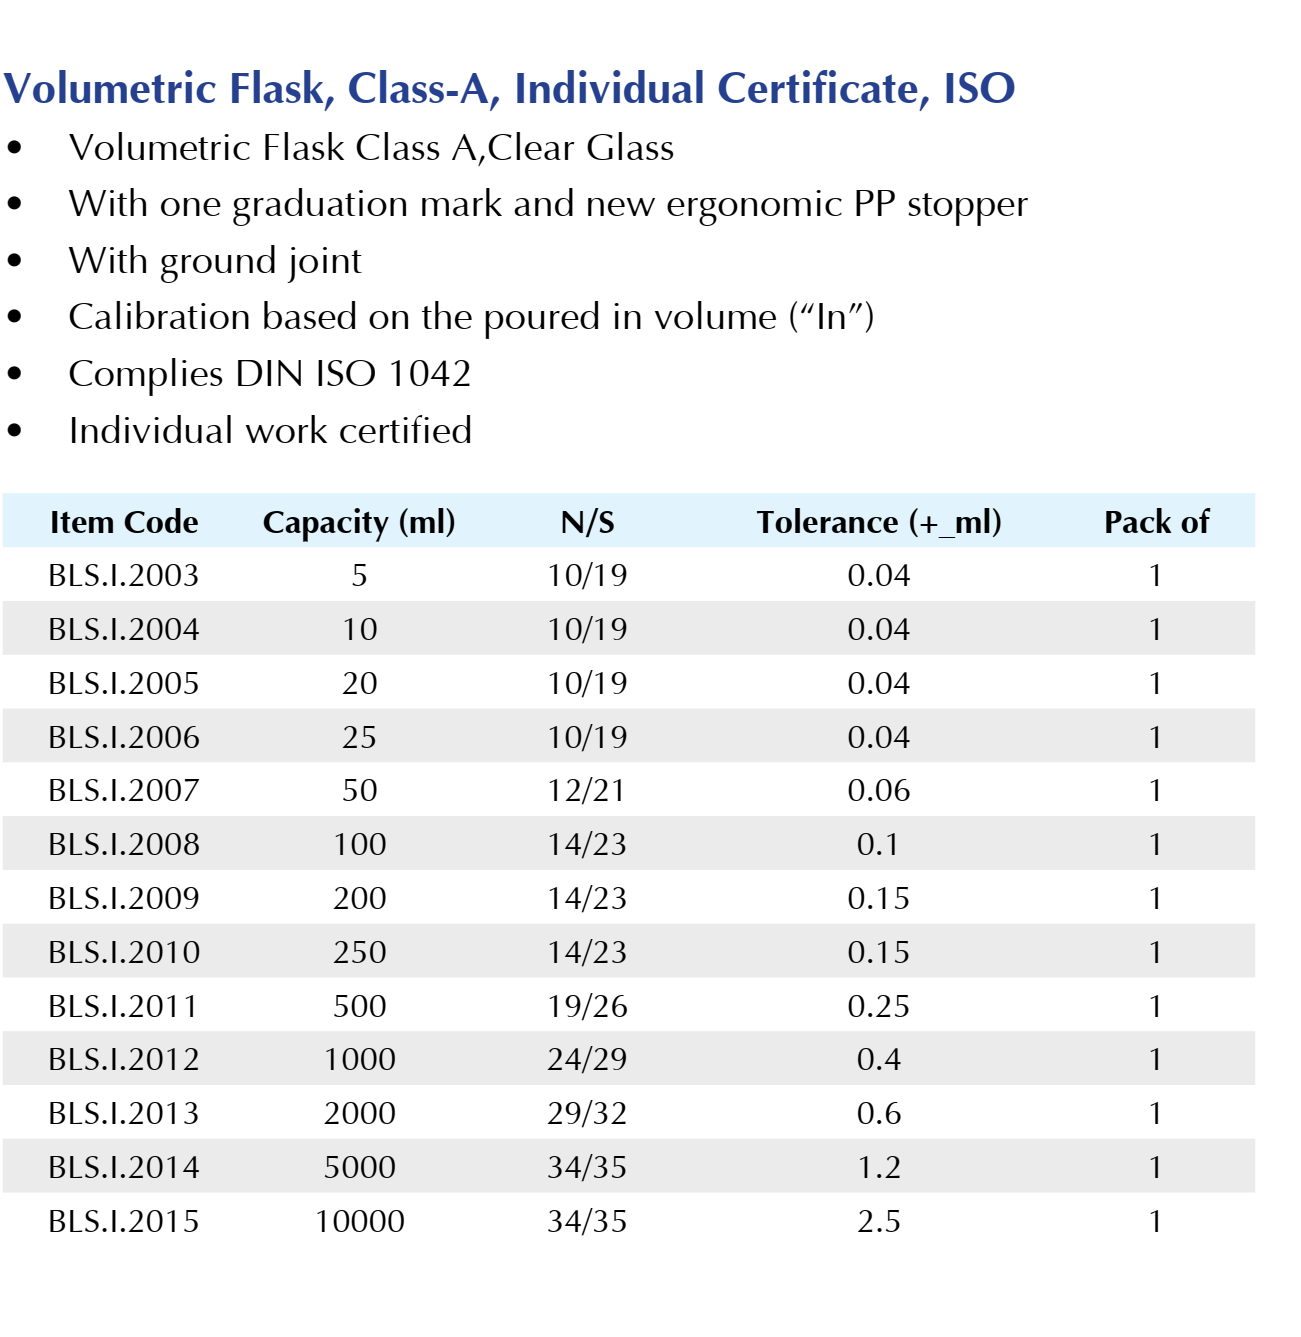 volumetric flask A individual certified.png